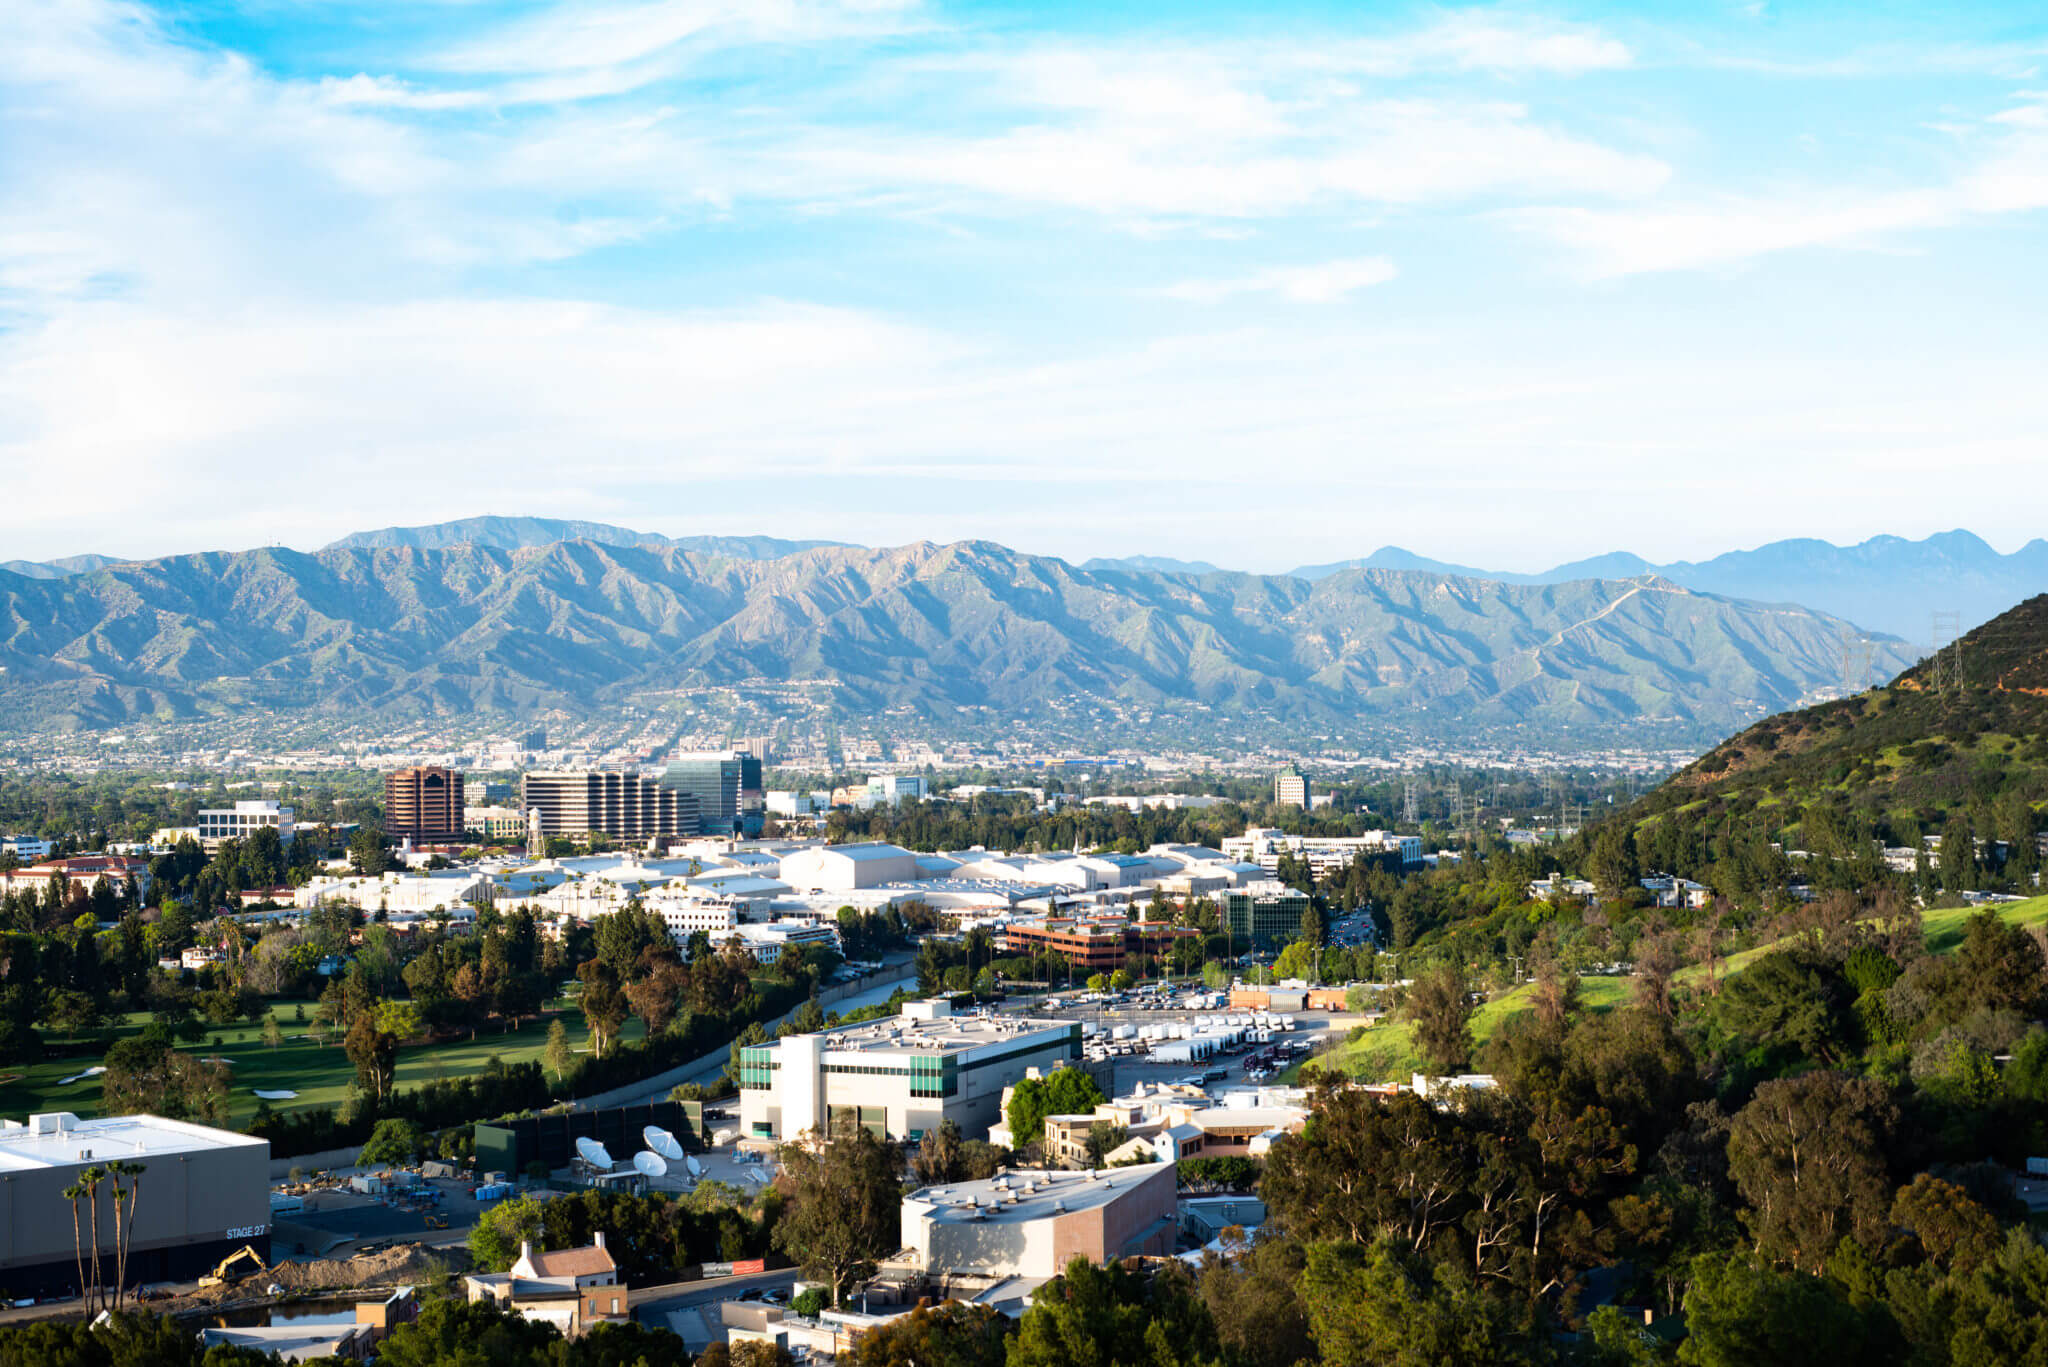 Rolling Hollywood Hills at Universal Studios in Los Angeles, California